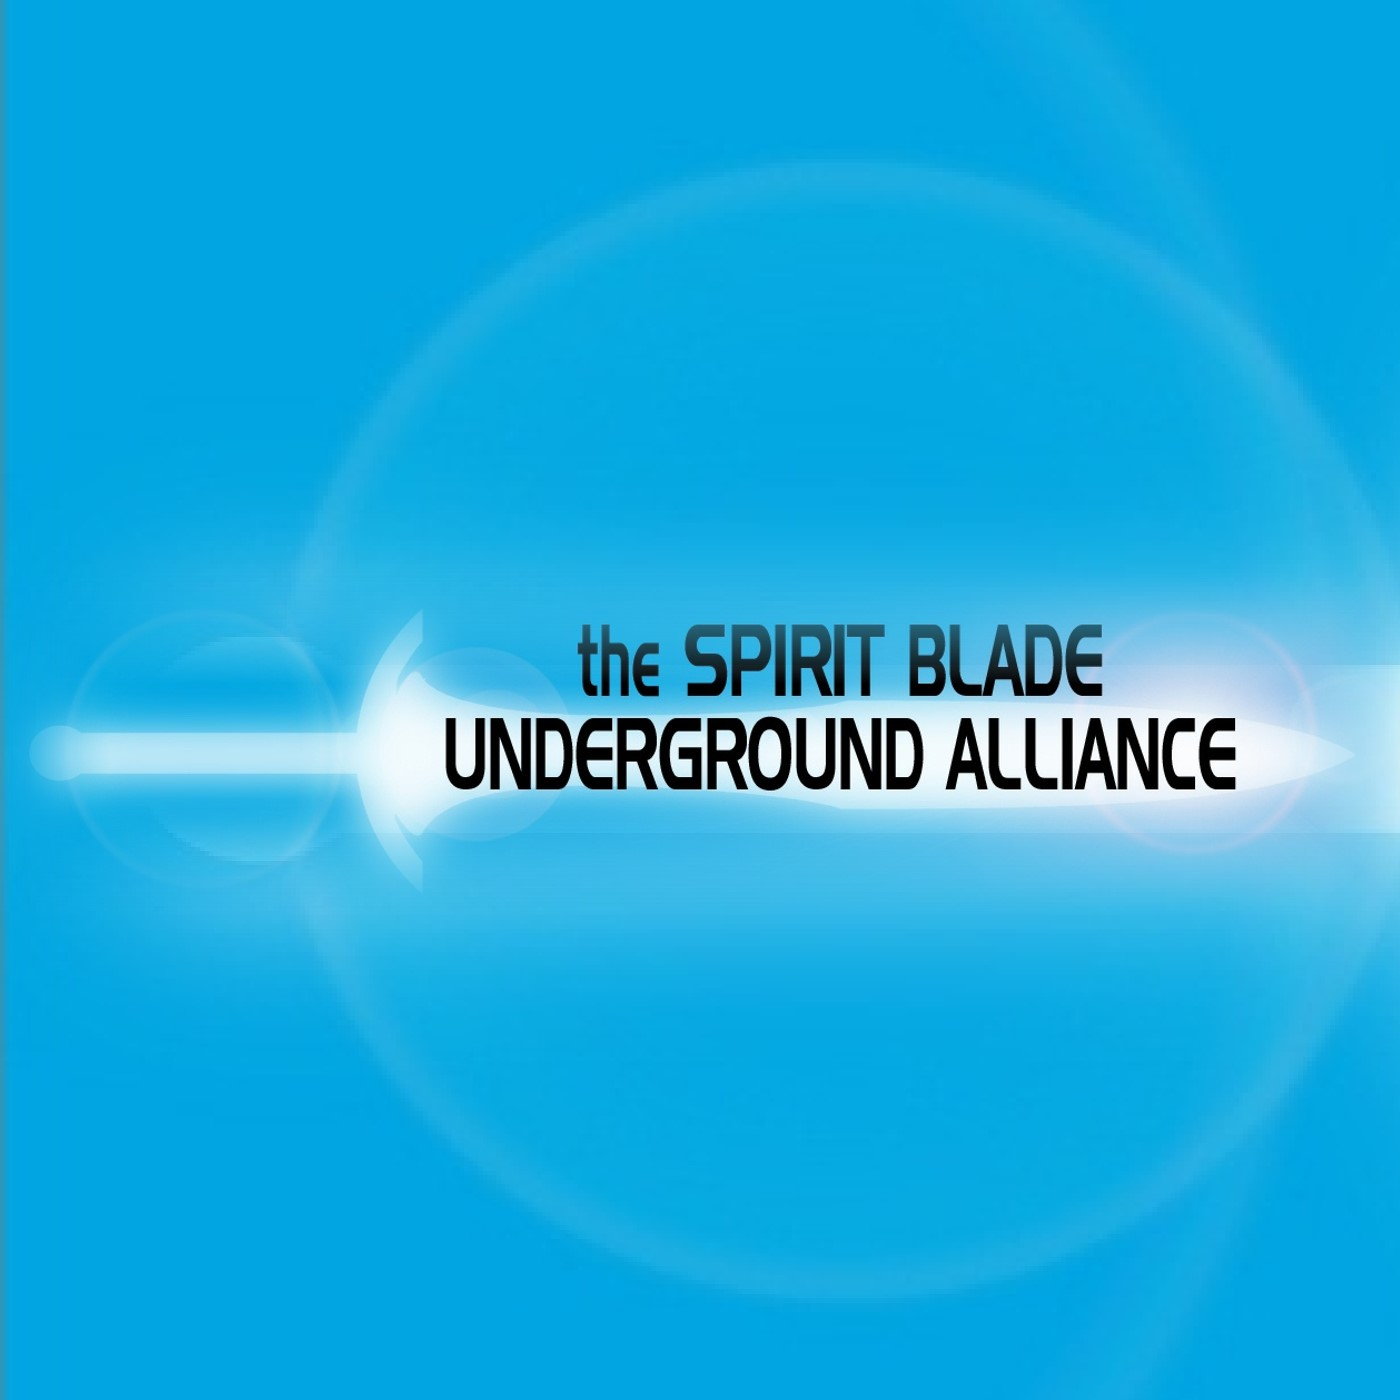 Spirit Blade Underground Alliance